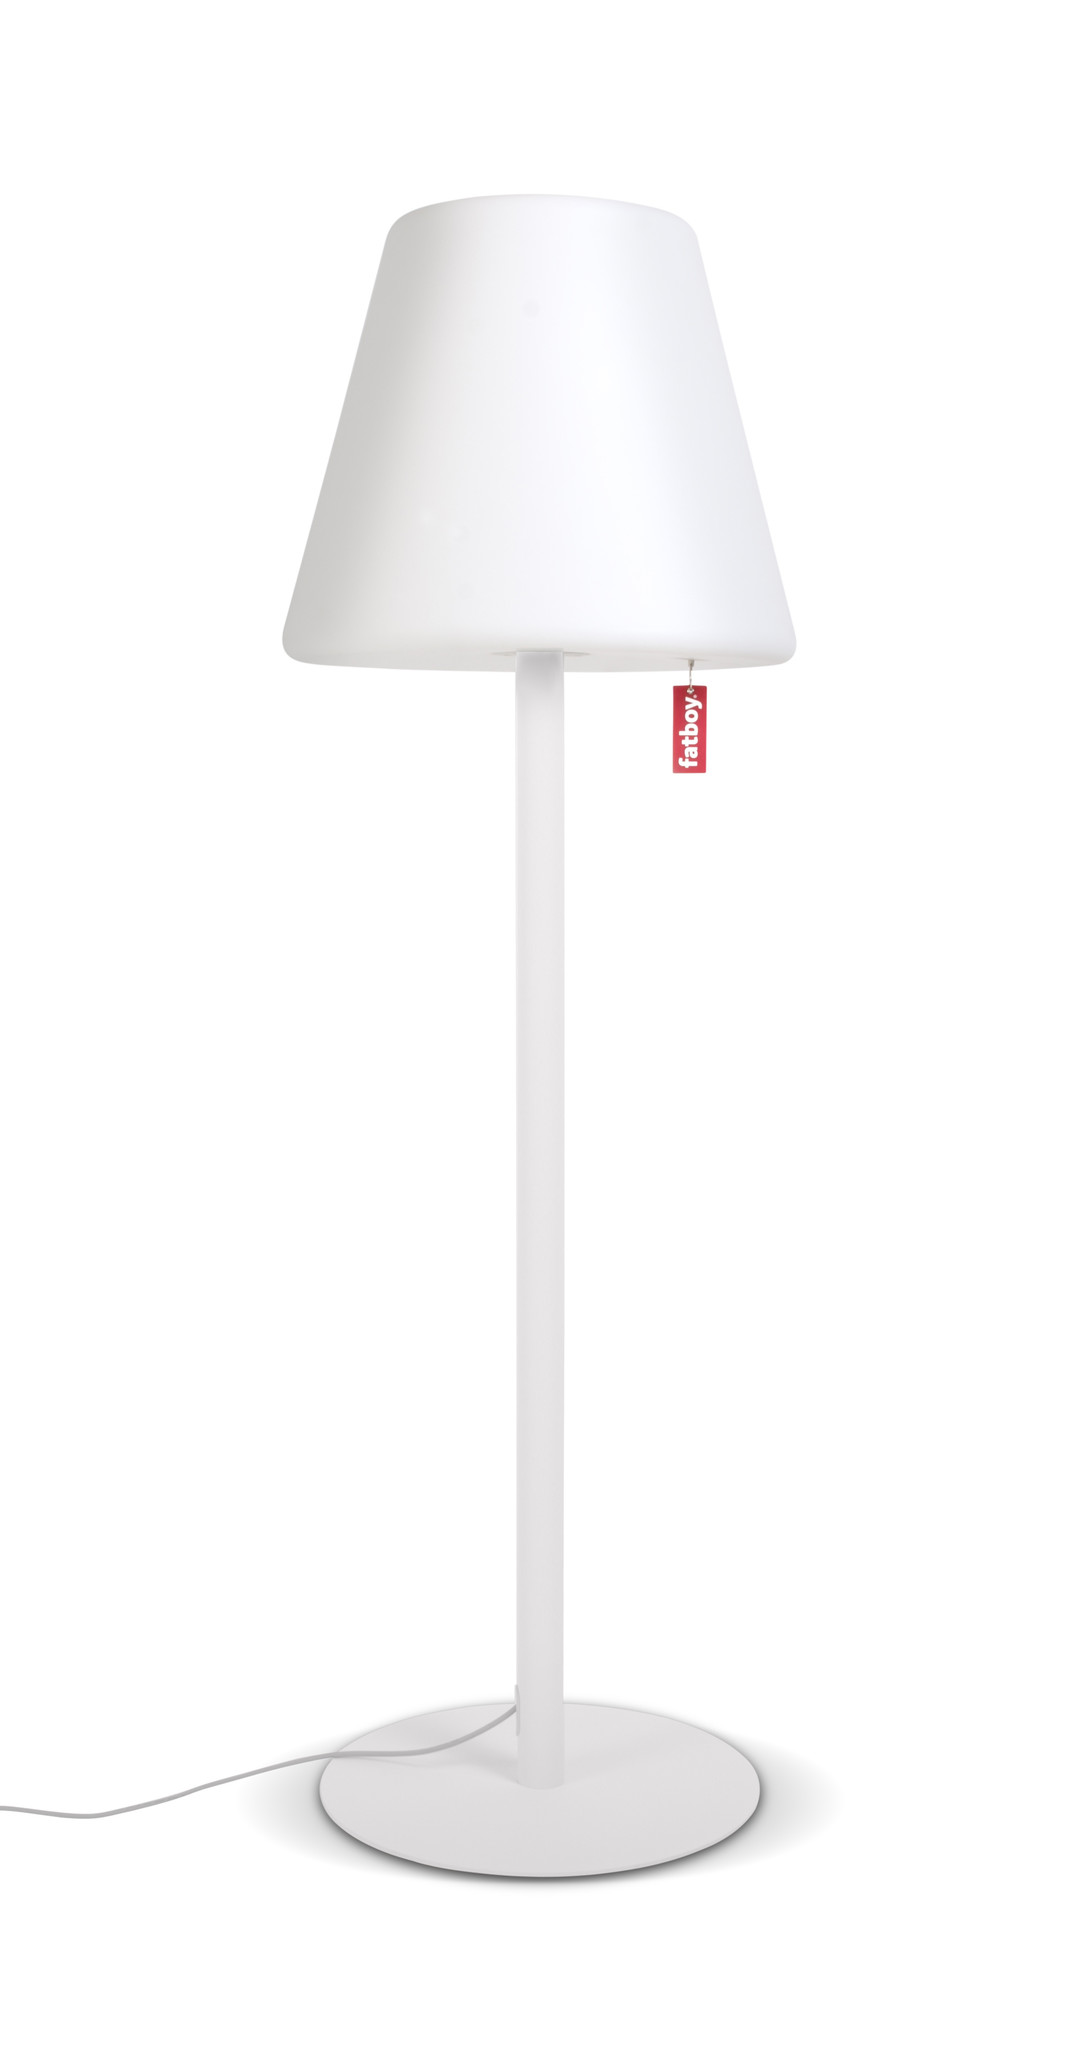 Fatboy Vloerlamp Edison the Giant wit